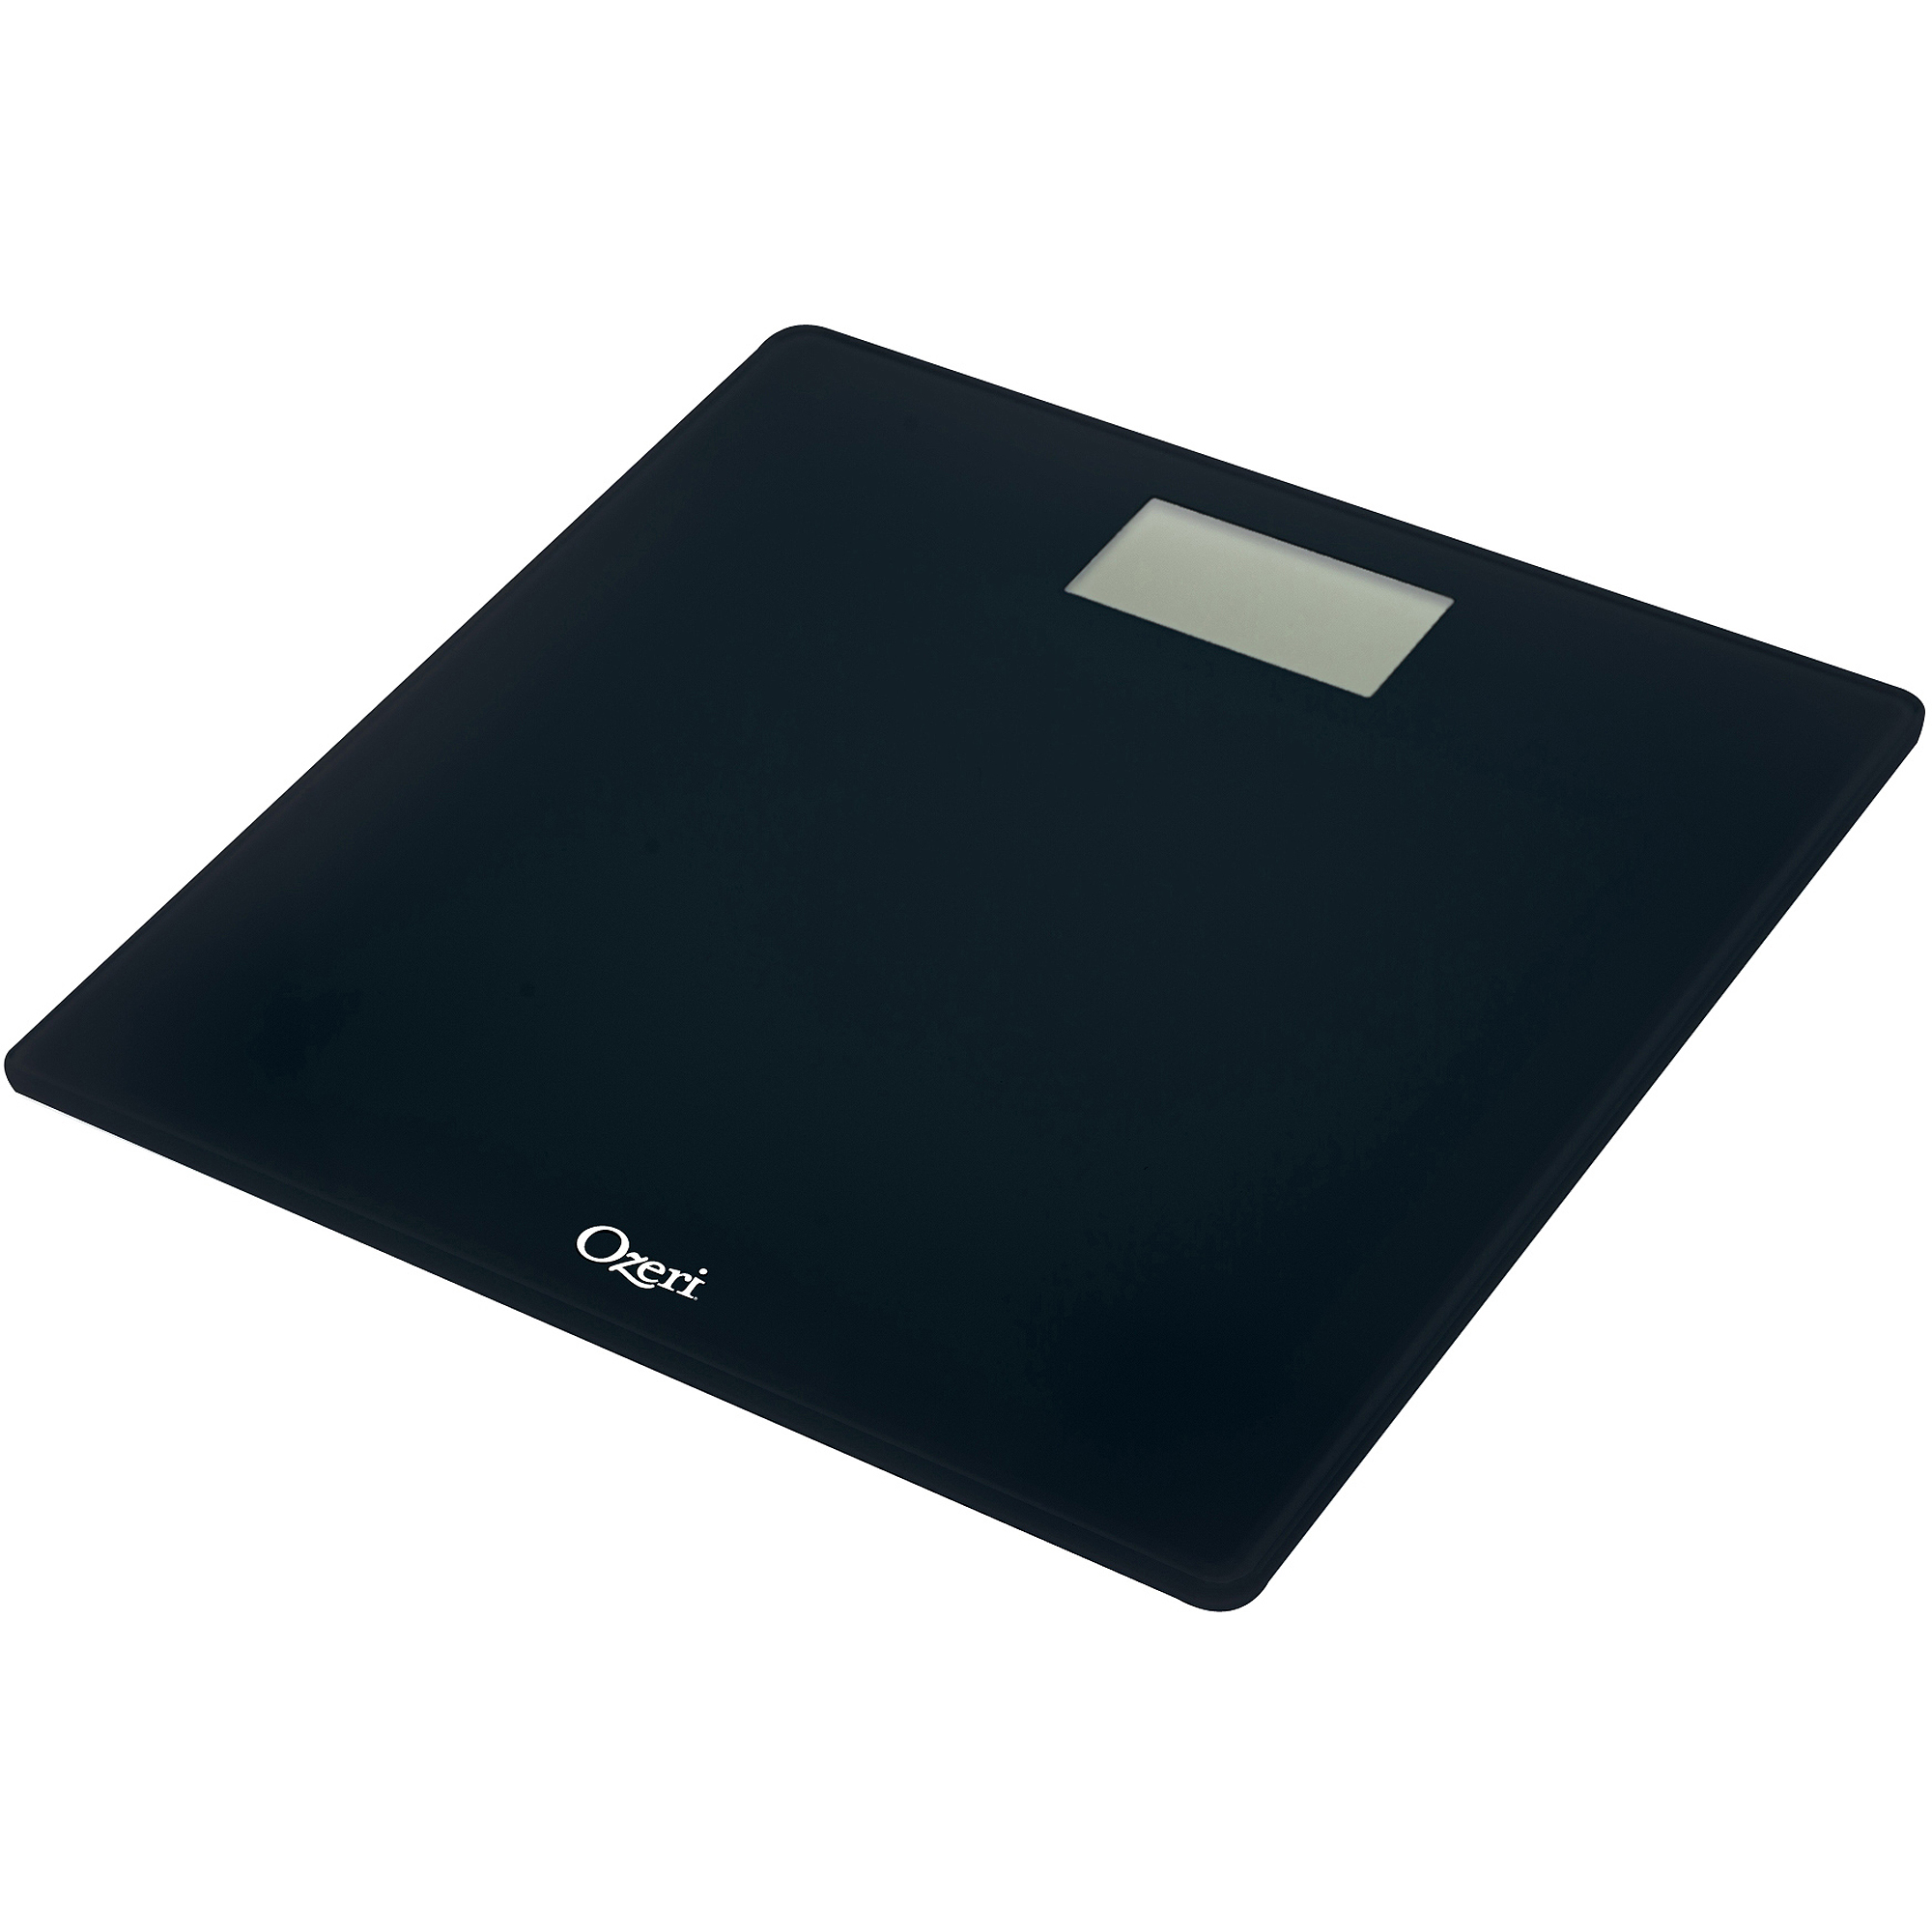 Bed bath and beyond bathroom scales - Eatsmart Precision Digital Bathroom Scale Cheap Weight Scales Bed Bath And Beyond Scales For